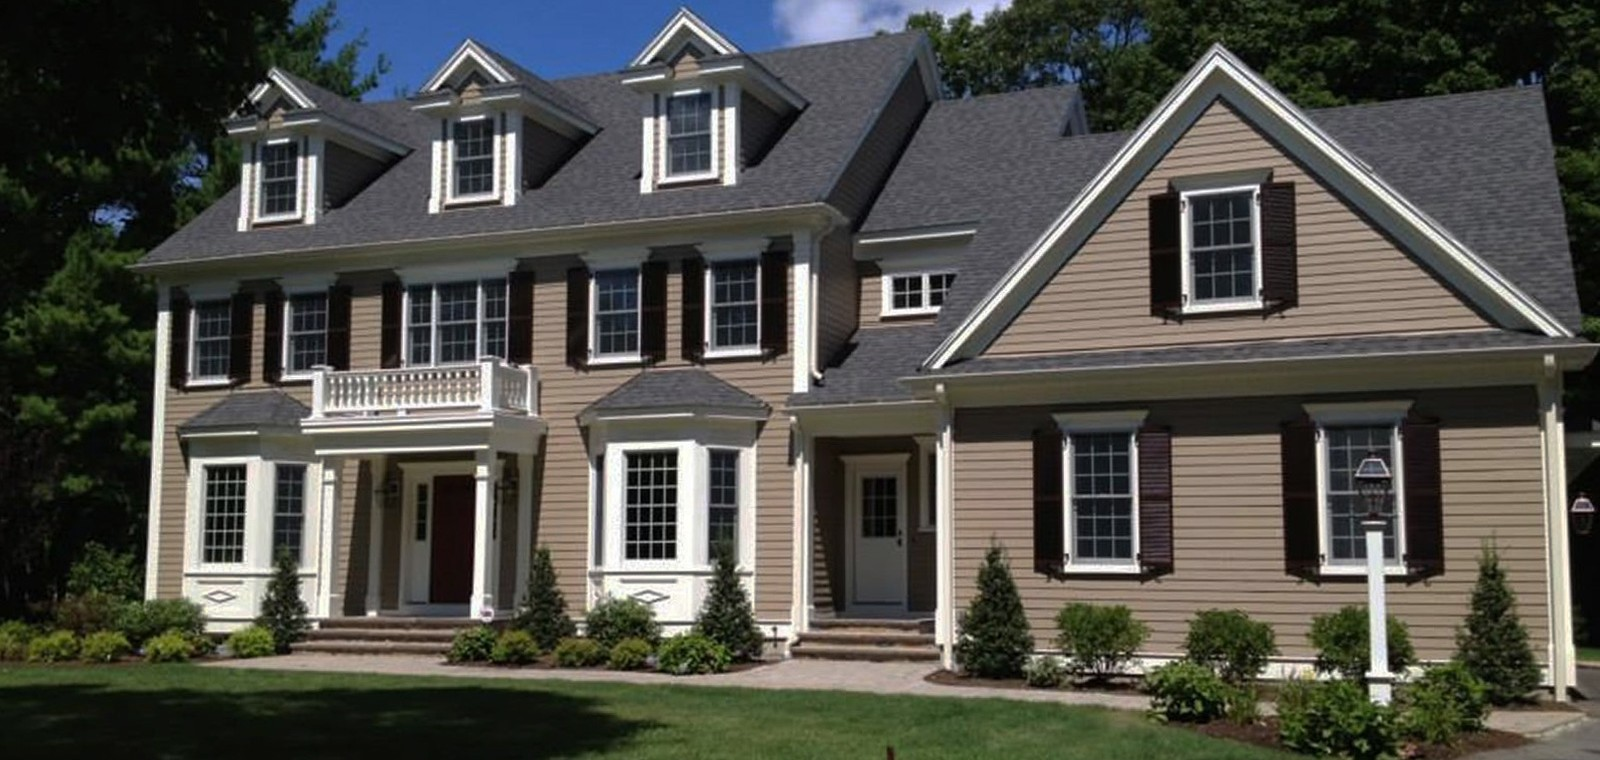 New england shutter mills interior and exterior shutters - Pictures of exterior shutters on homes ...